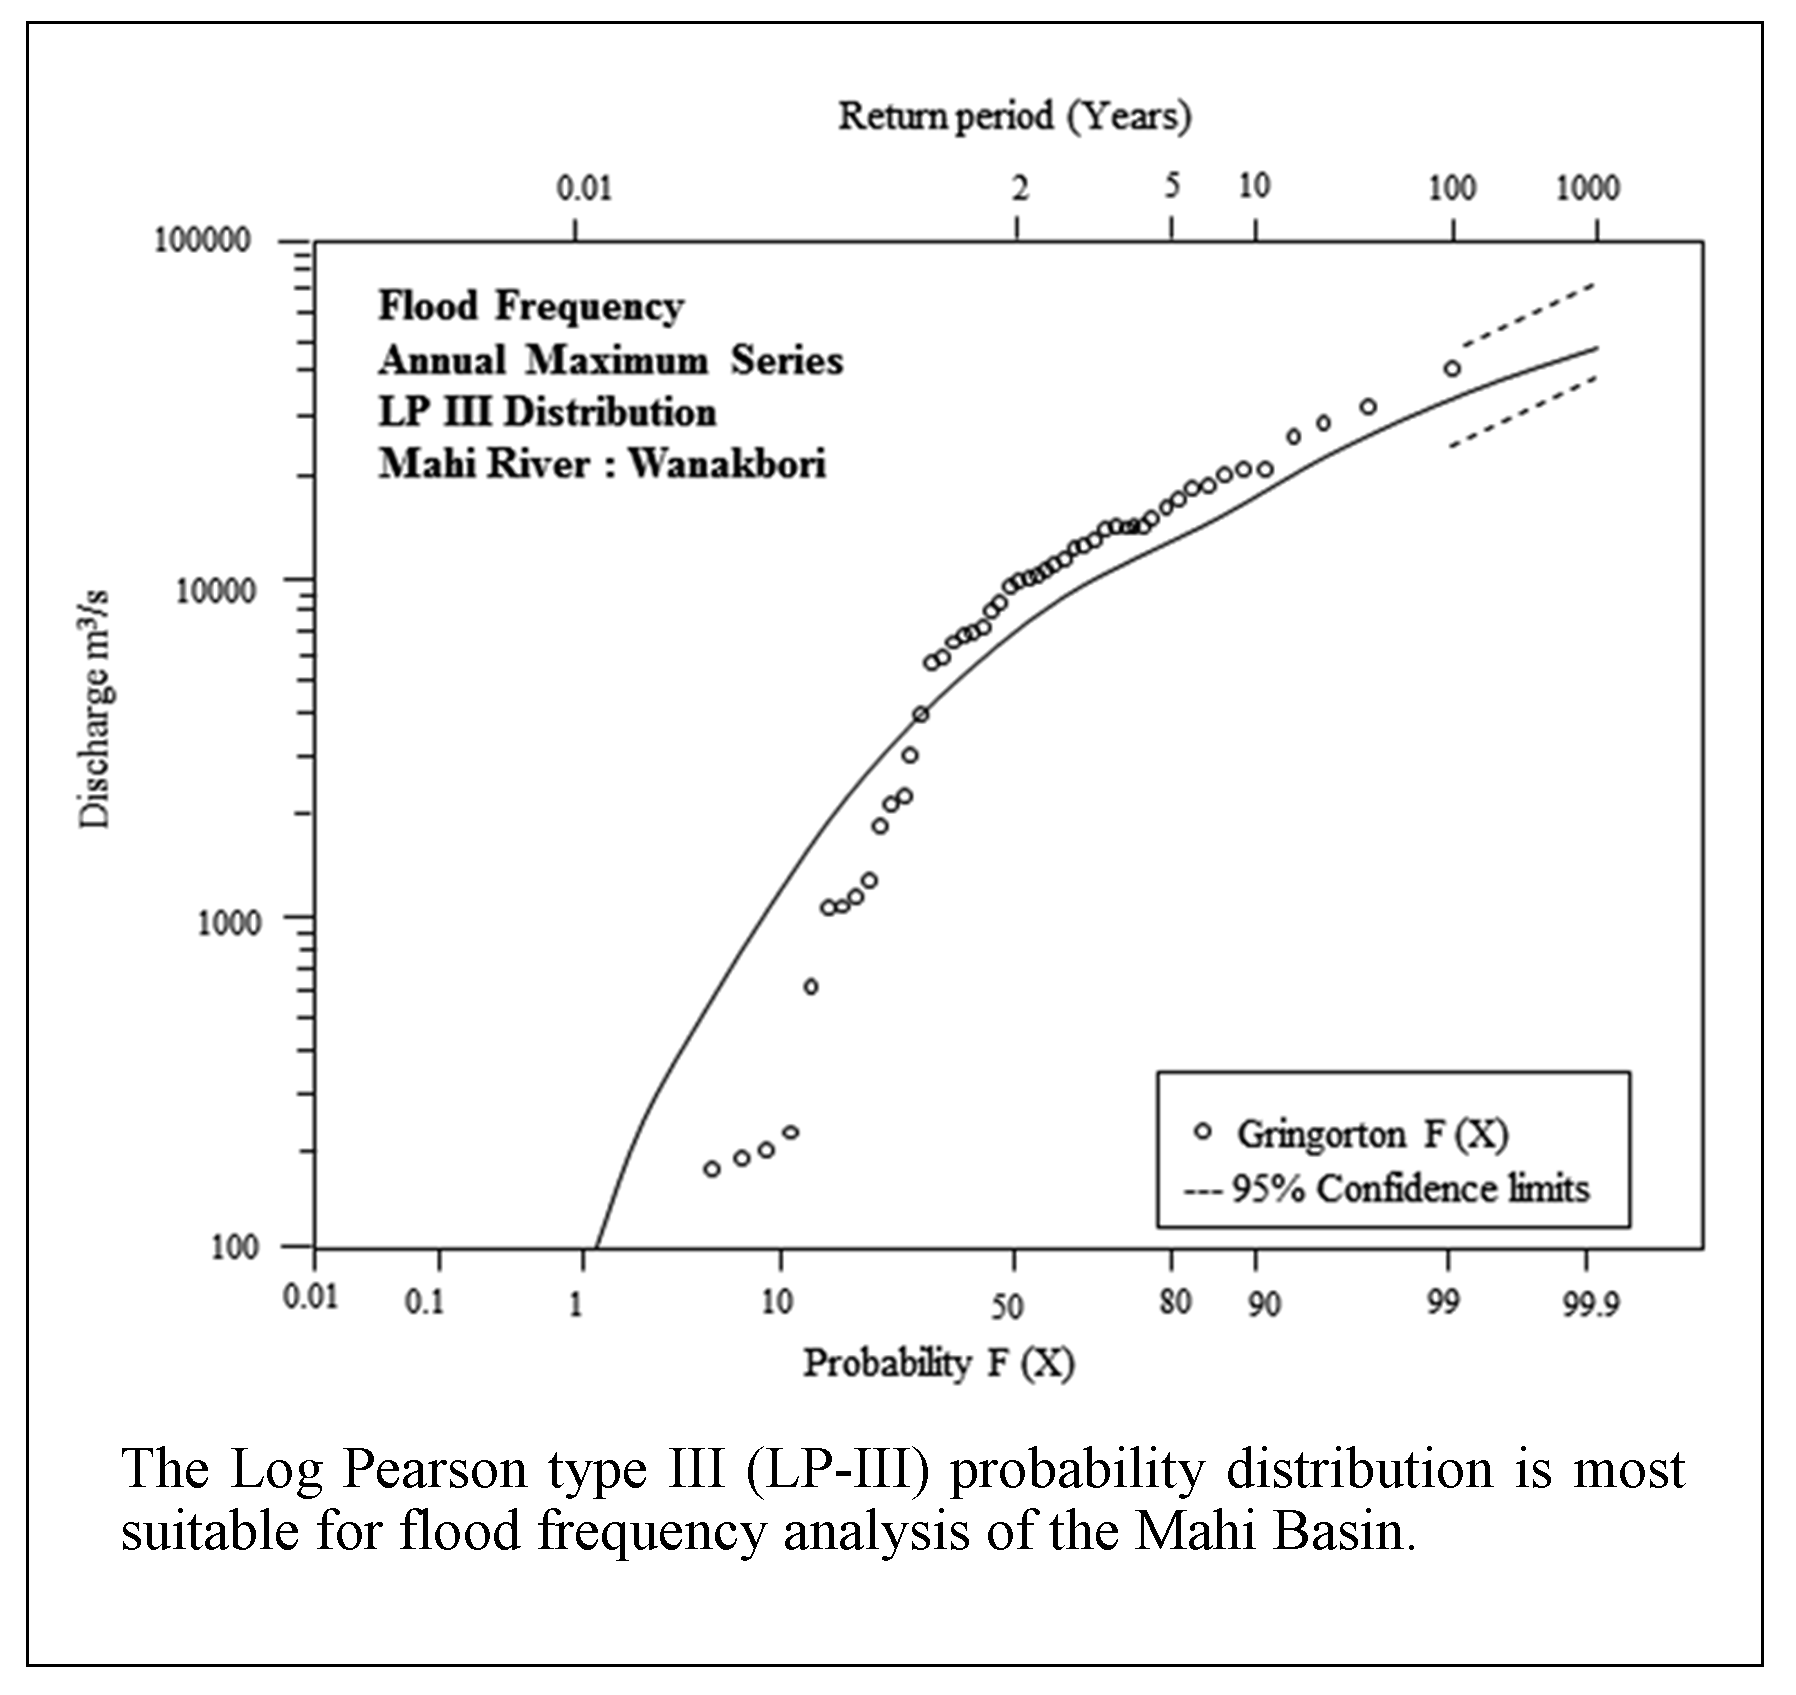 Flood Frequency Analysis of the Mahi Basin by Using Log Pearson Type III Probability Distribution